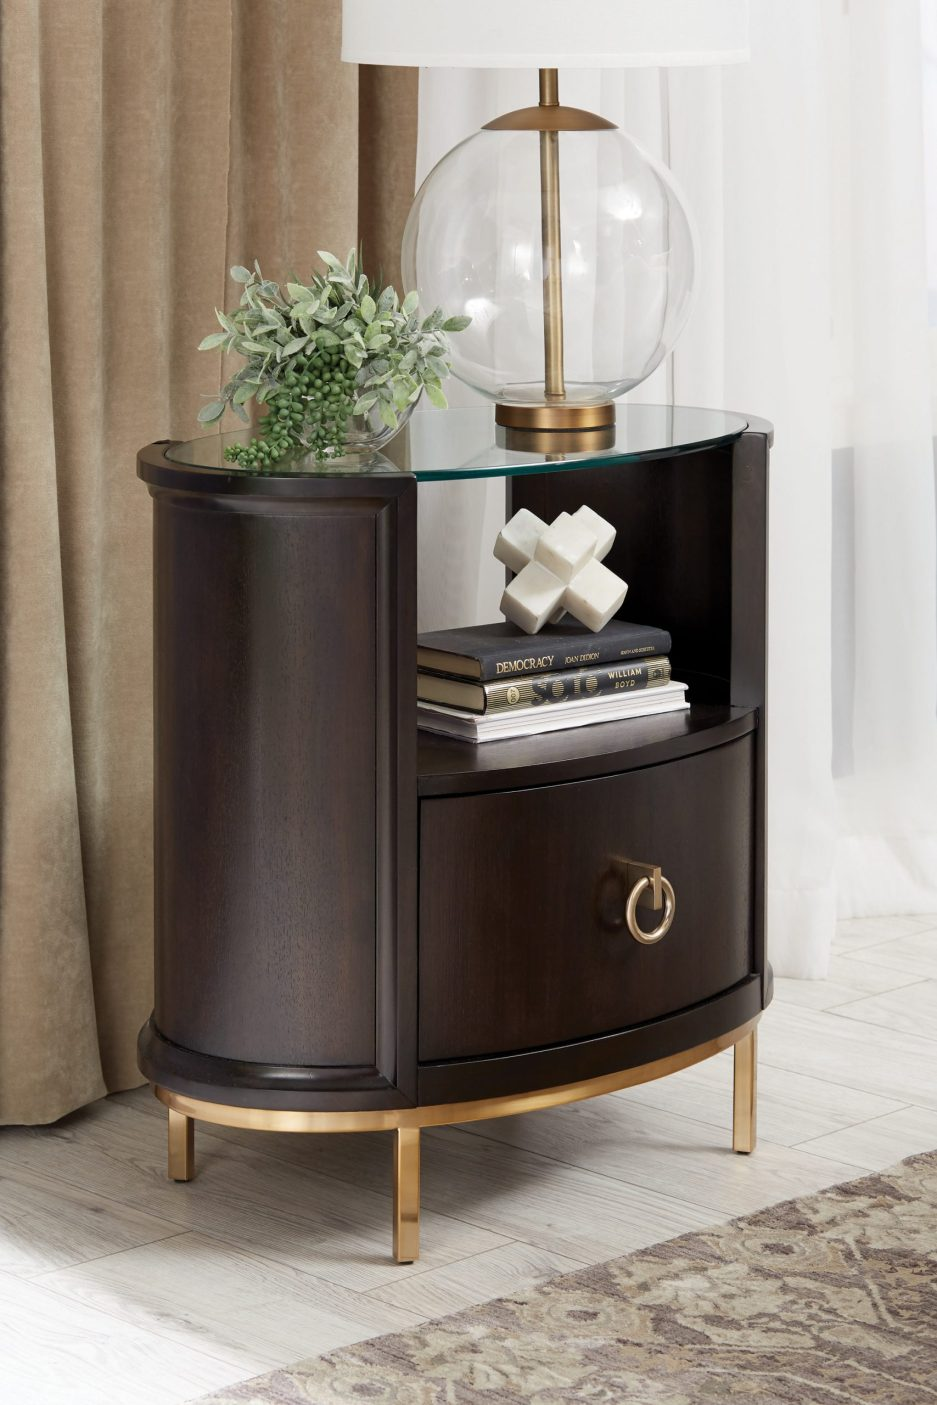 formosa 1 drawer oval nightstand americano and rose brass